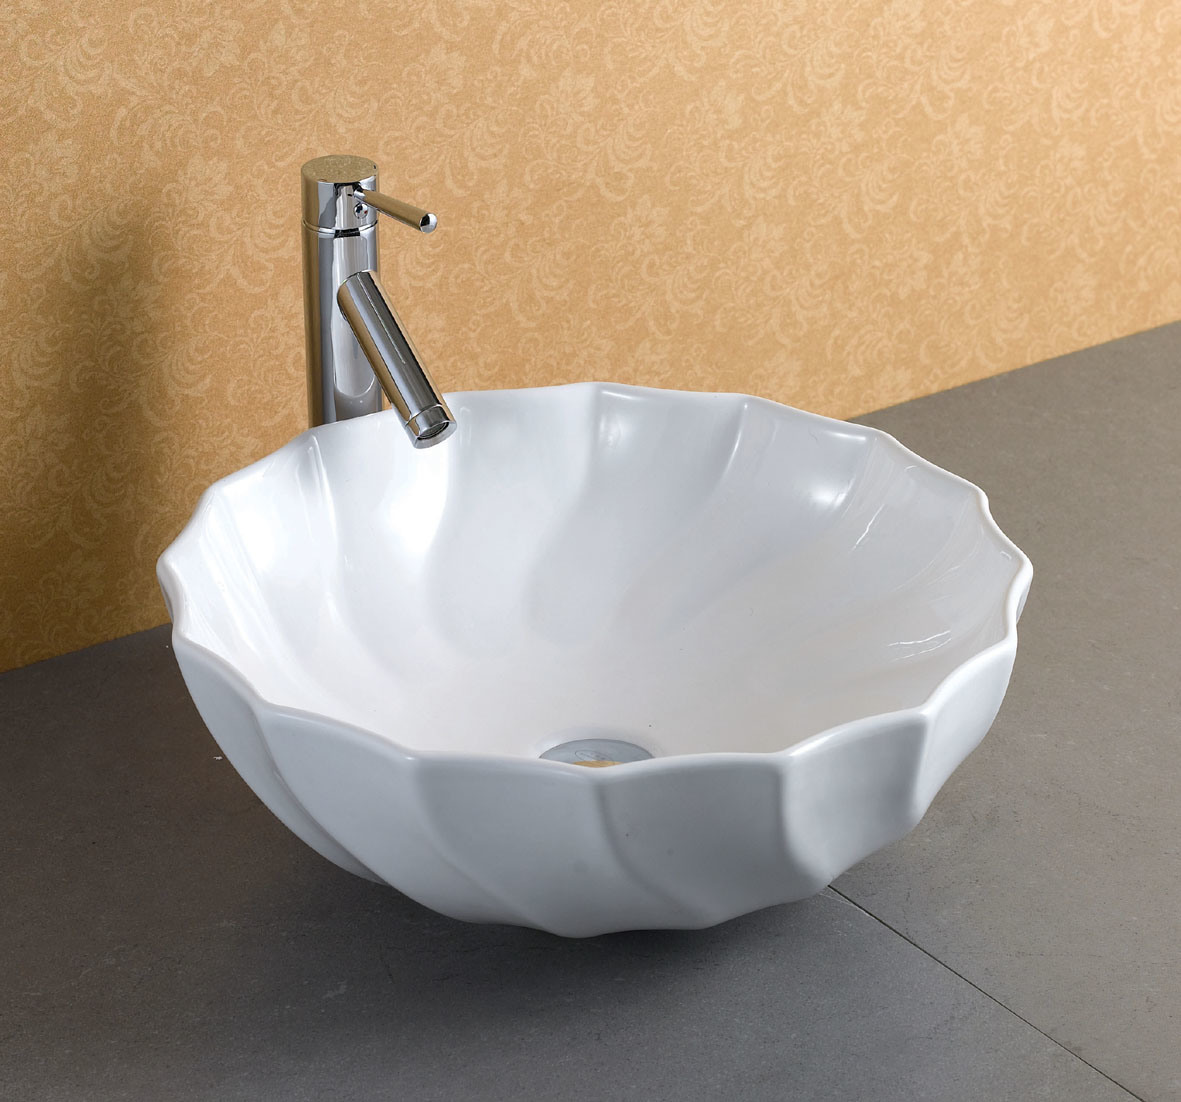 Bathroom Wash Basin (AB-010) - China Bathroom Washbasin, Sink